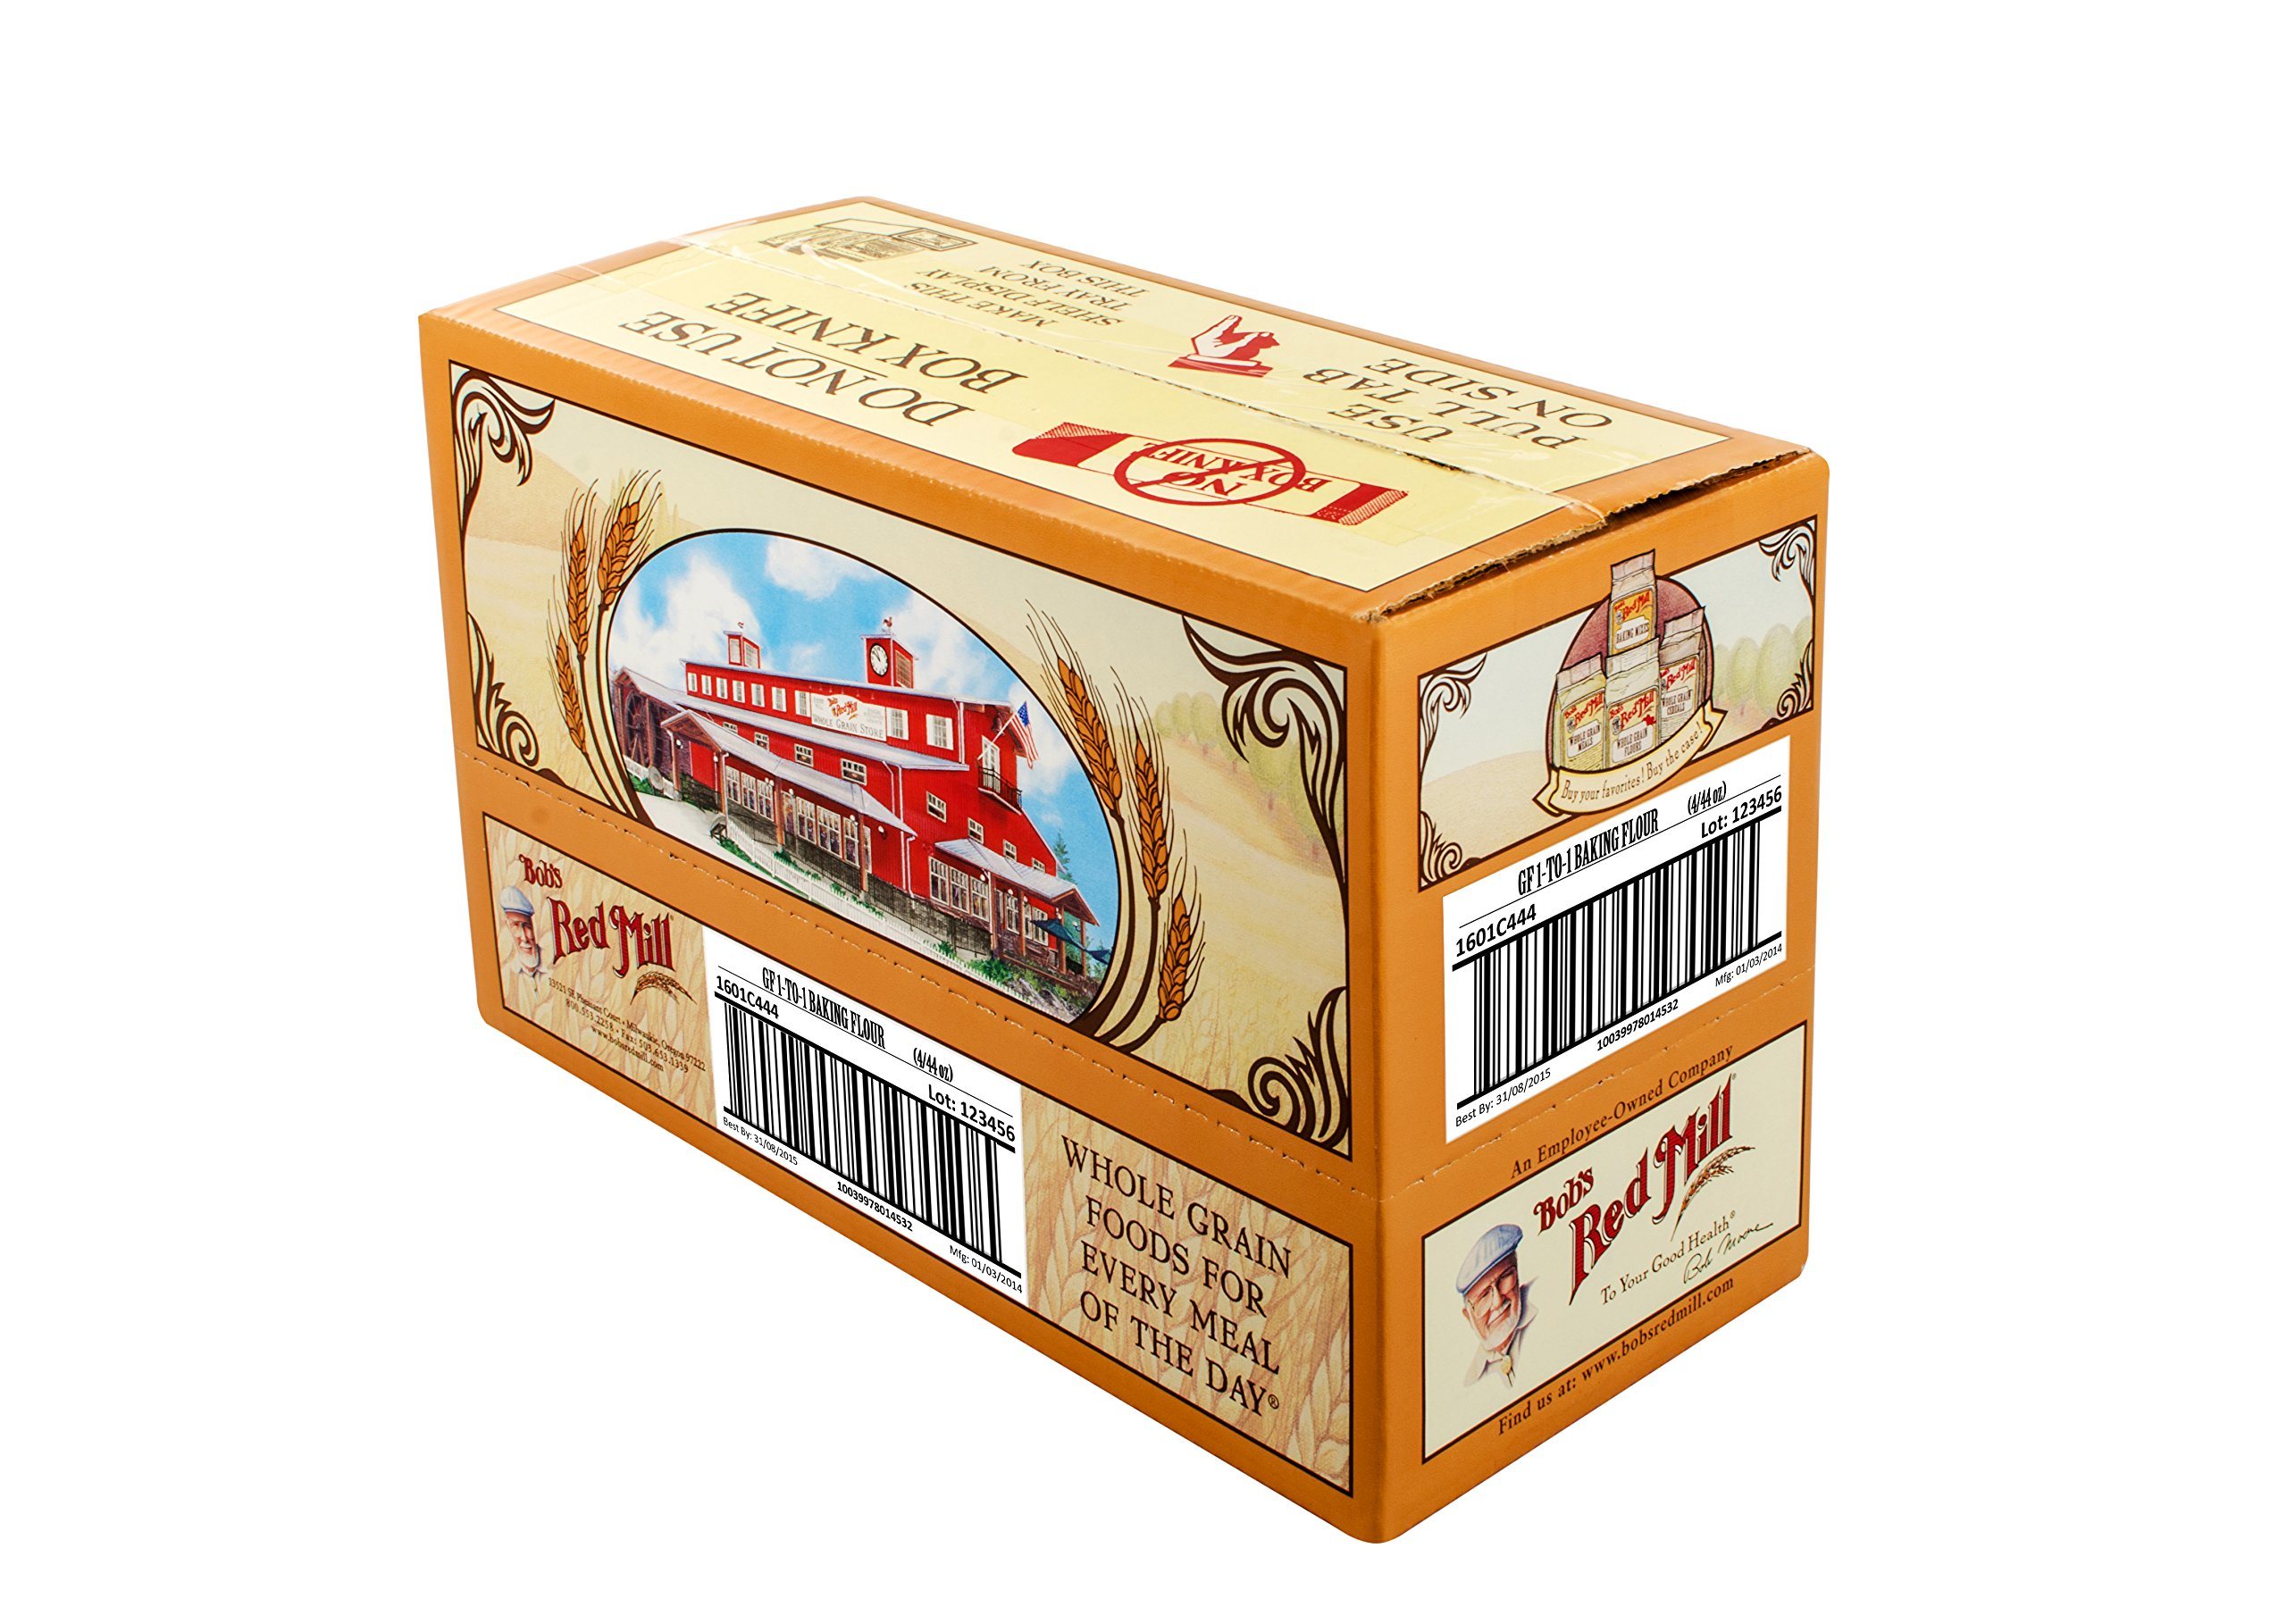 Bob's Red Mill Gluten Free 1 to 1 Baking Flour, 44 Ounce (Pack of 4) by Bob's Red Mill (Image #6)